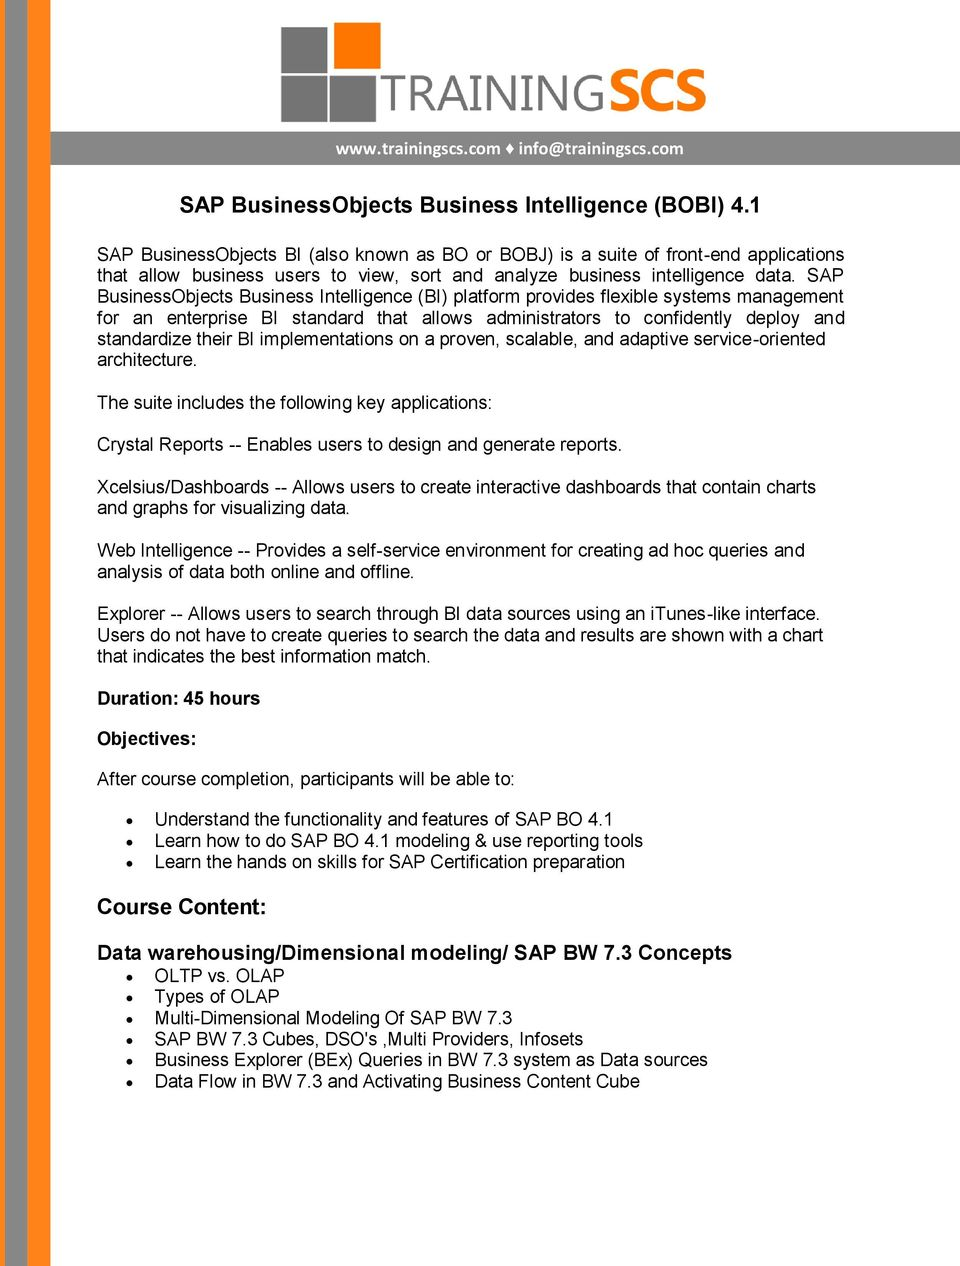 SAP BusinessObjects Business Intelligence (BI) platform provides flexible systems management for an enterprise BI standard that allows administrators to confidently deploy and standardize their BI